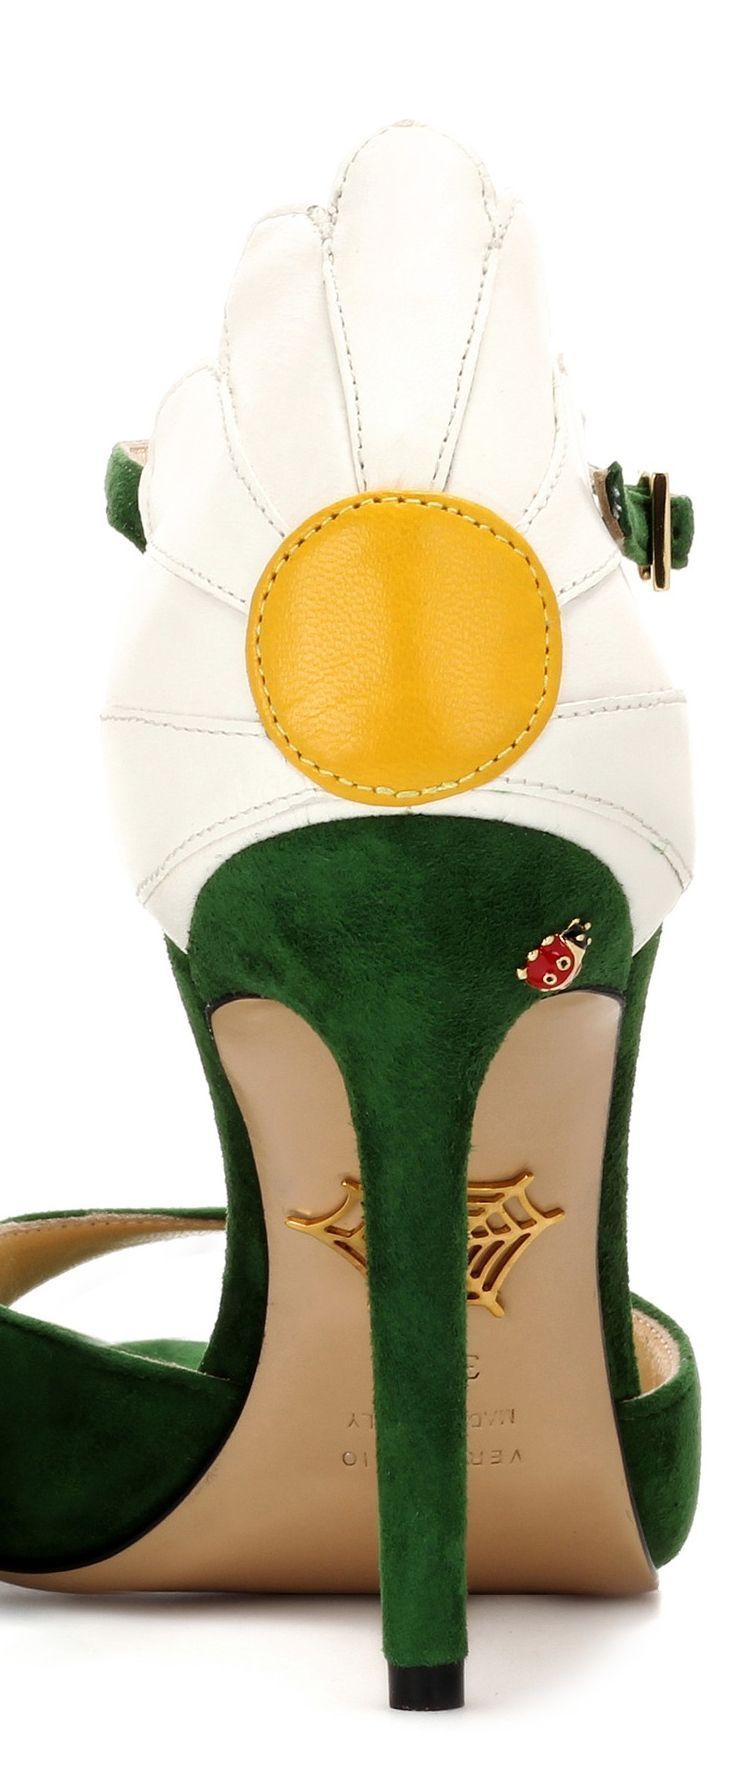 Charlotte Olympia Ladybird, Ladybug Enamel Details, Marge 100 embellished suede sandals shoes. Crafted in verdant green suede with high stiletto heel, these are statement maker shoes. The heel is hugged by a leather daisy, accompanied by a painted gold-tone ladybug for quirky effect. Look so pretty with a contrasting Green or Sapphire Blue Dress. Fashion Outfits inspiration Ideas. Shoe addict. #shoes #heels #racingfashion #affiliate #shopping #fashionista #daisy #florals #flowers…